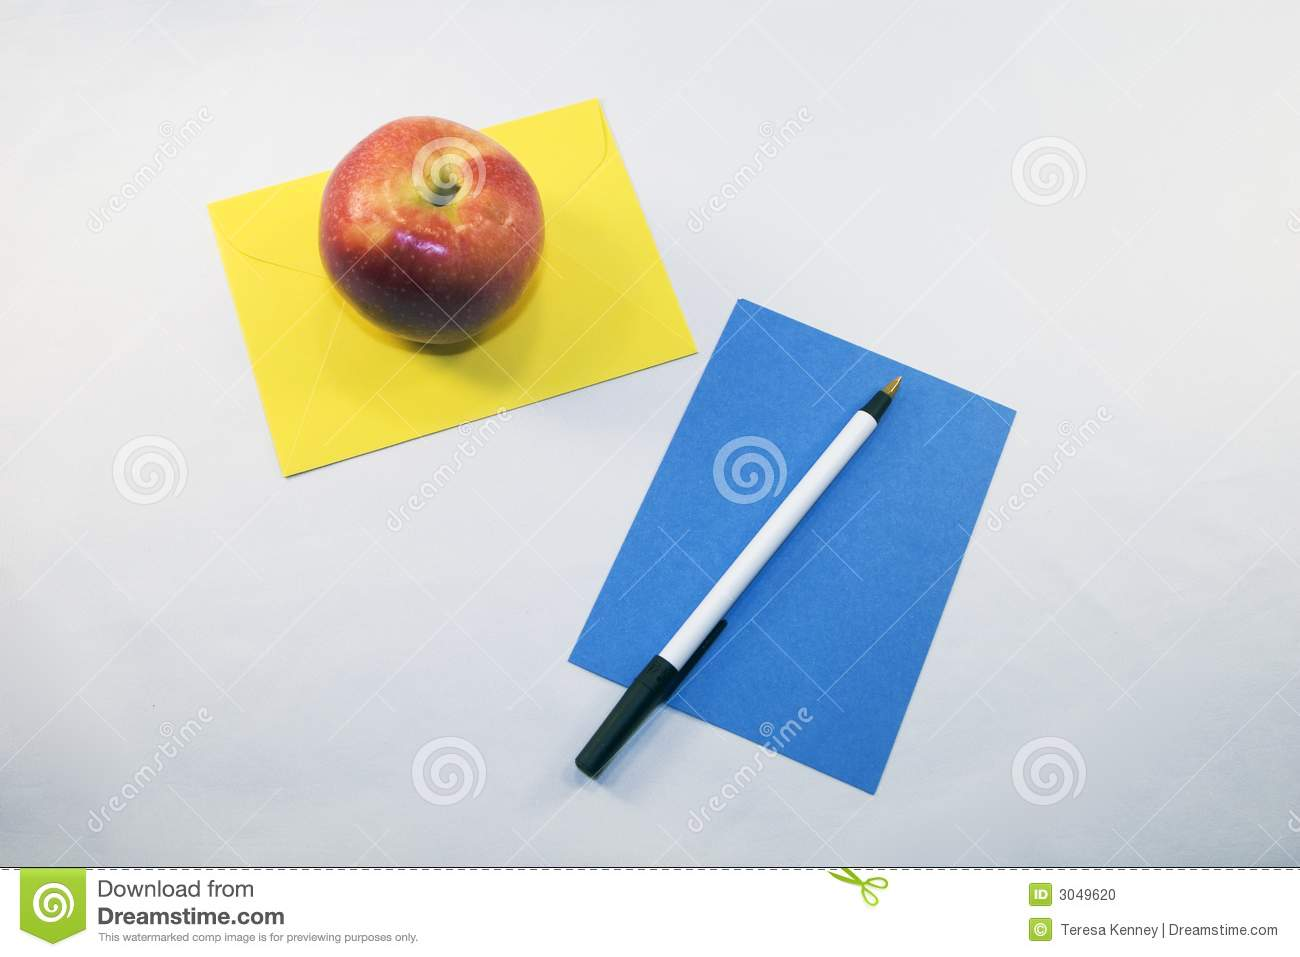 Pen and apple on paper